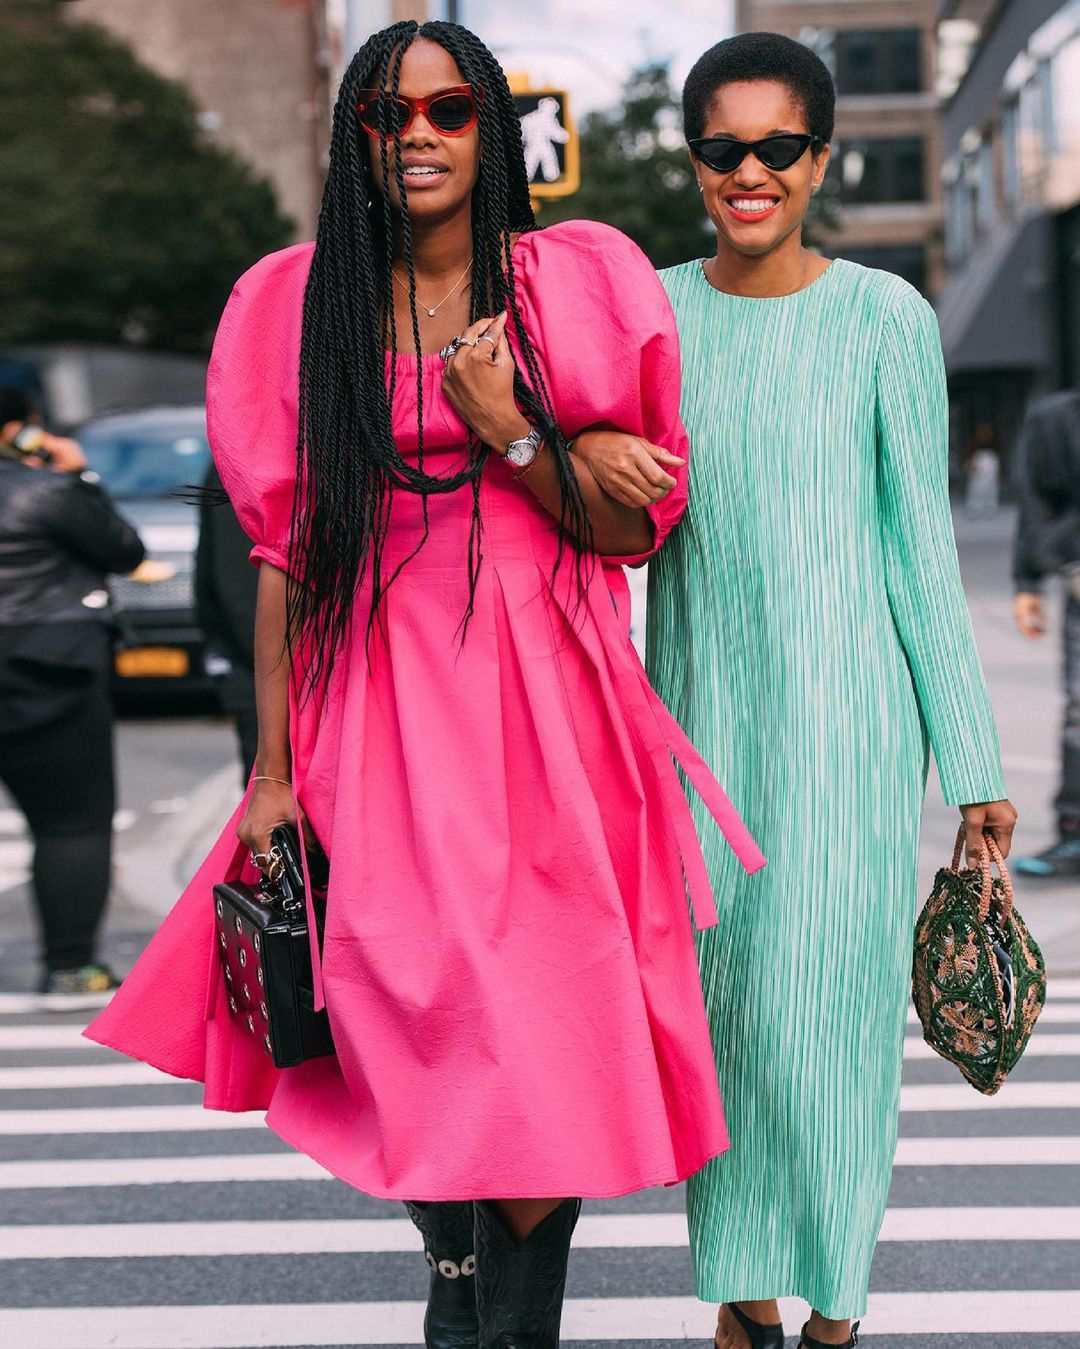 Two women crossing the street in brightly coloured dresses